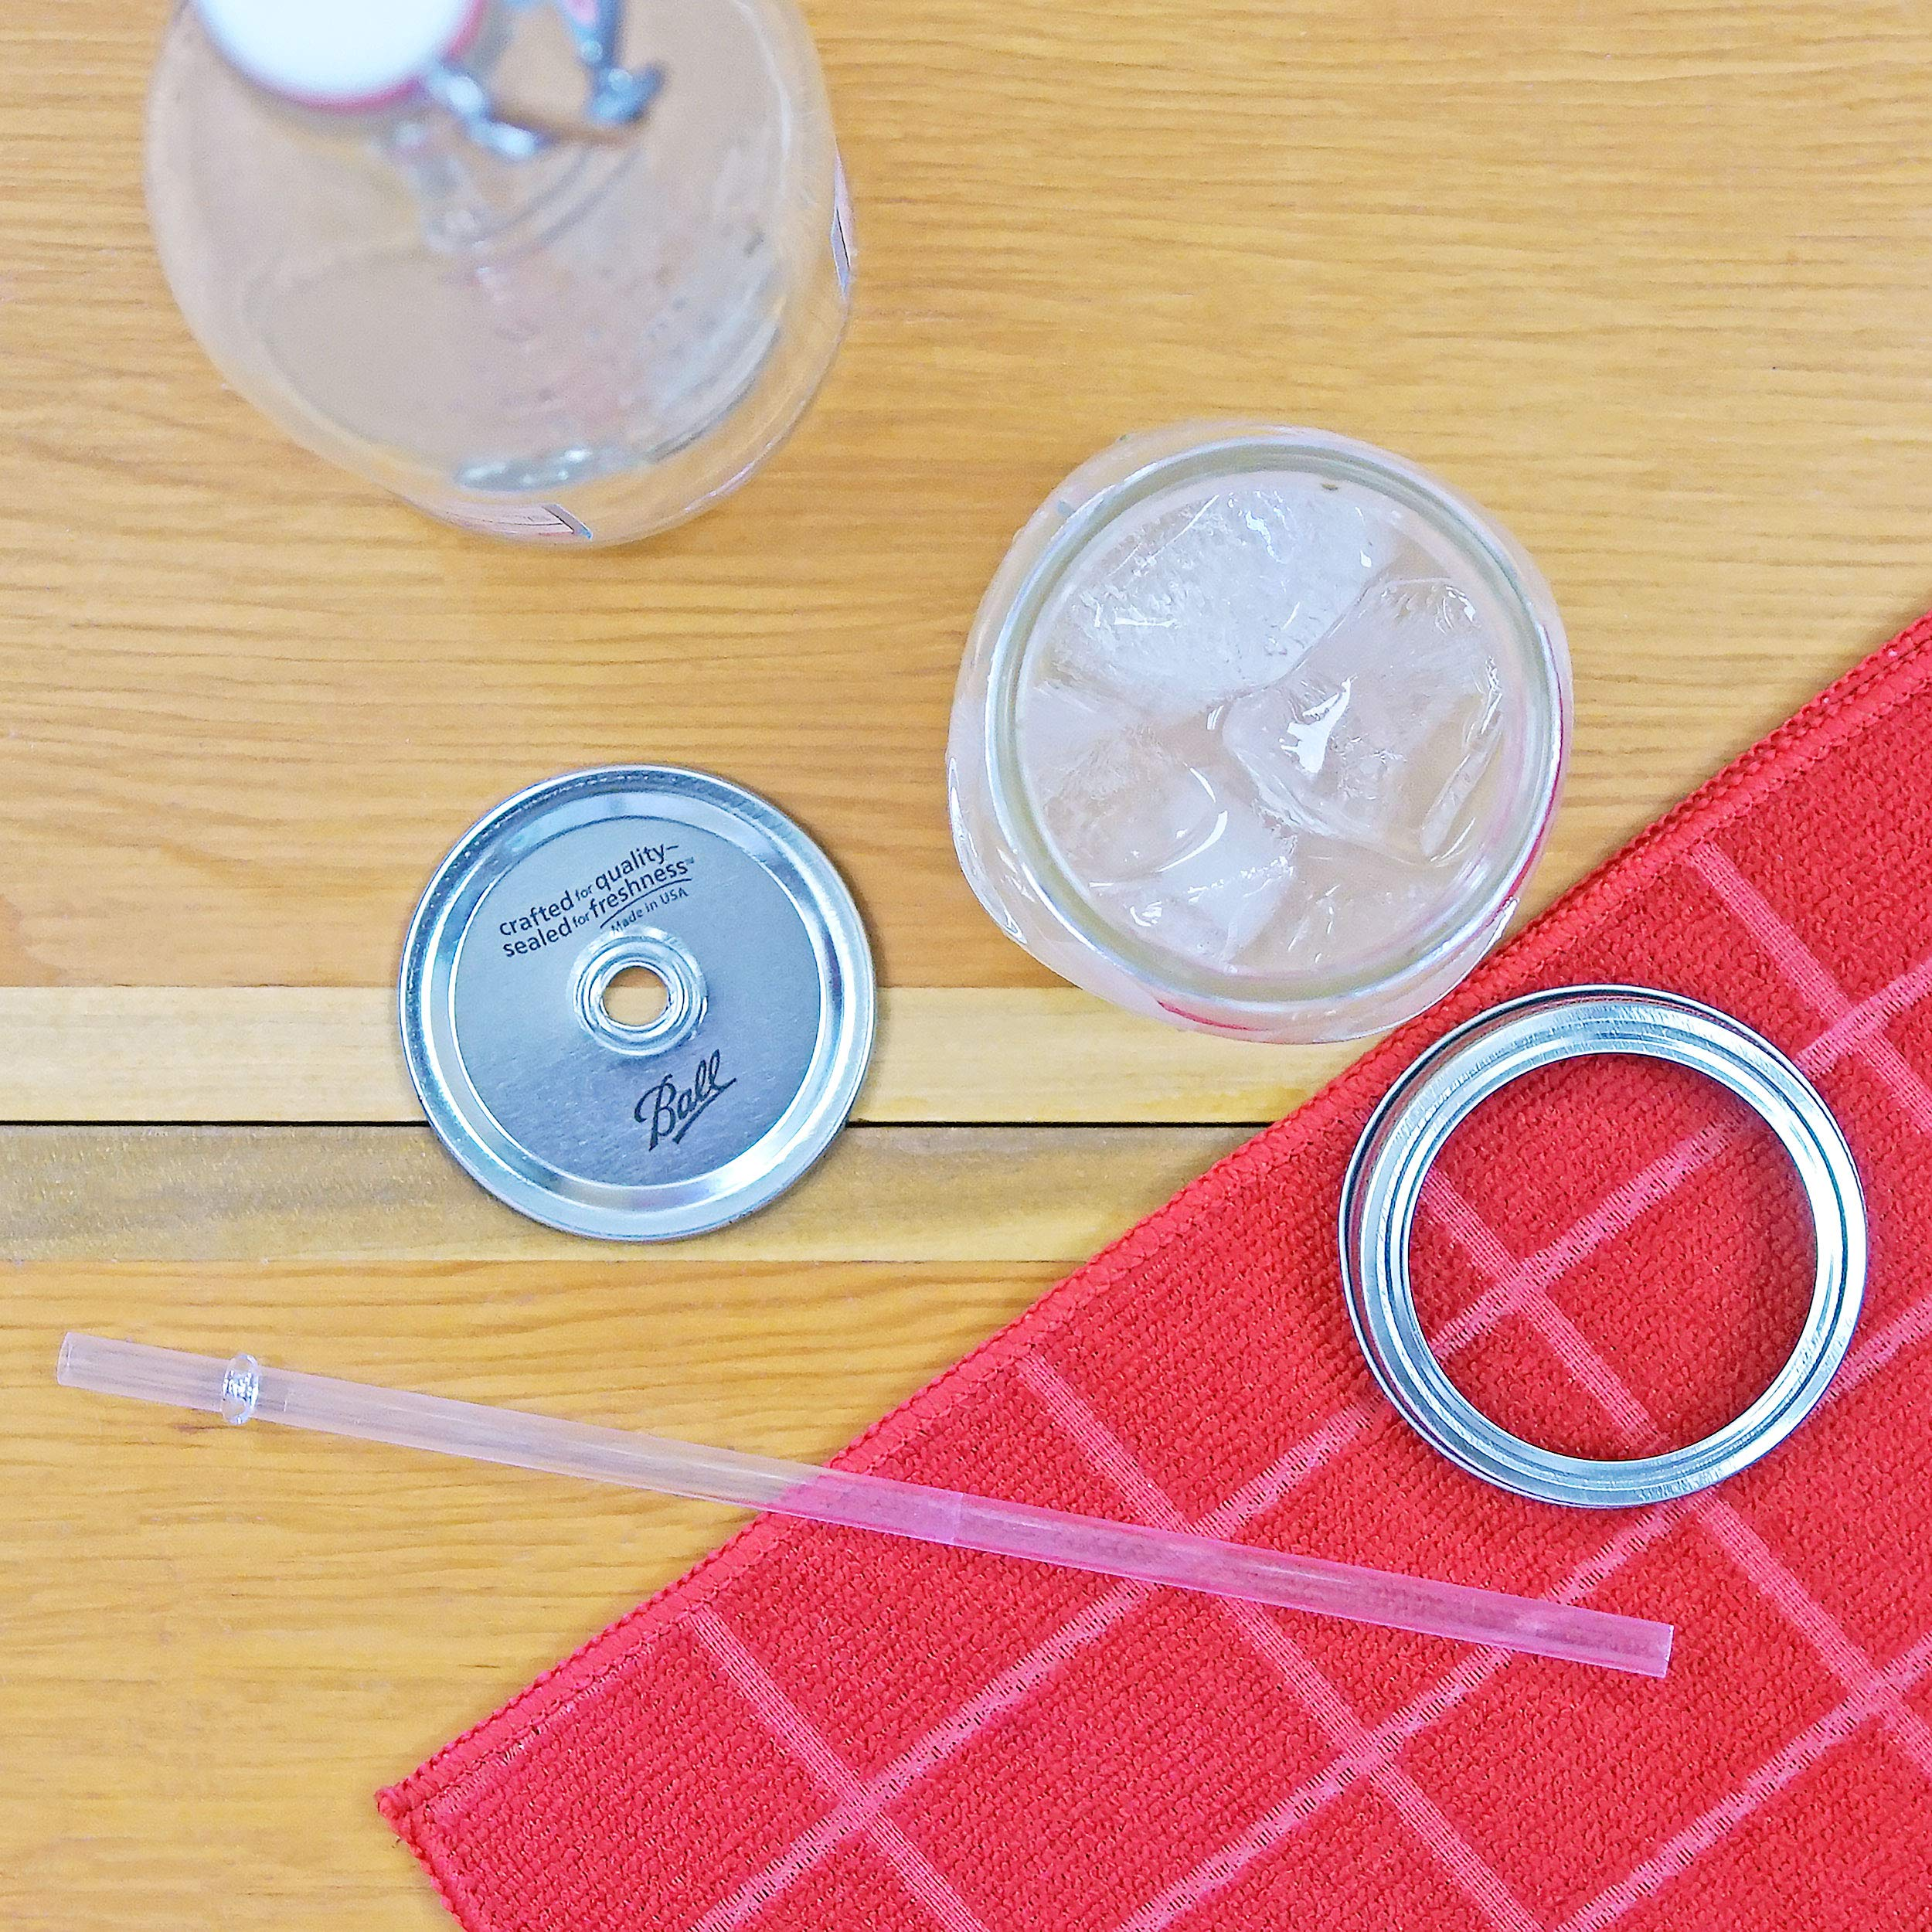 Ball RNWG-SIP-16OZ-2PK Sipper Set a 16oz Mason Jar + Sippin' Lid + Acrylic Straw Reusable Novelty Cocktail Glasses Shabby Chic, 2 Pack Clear by Ball (Image #4)